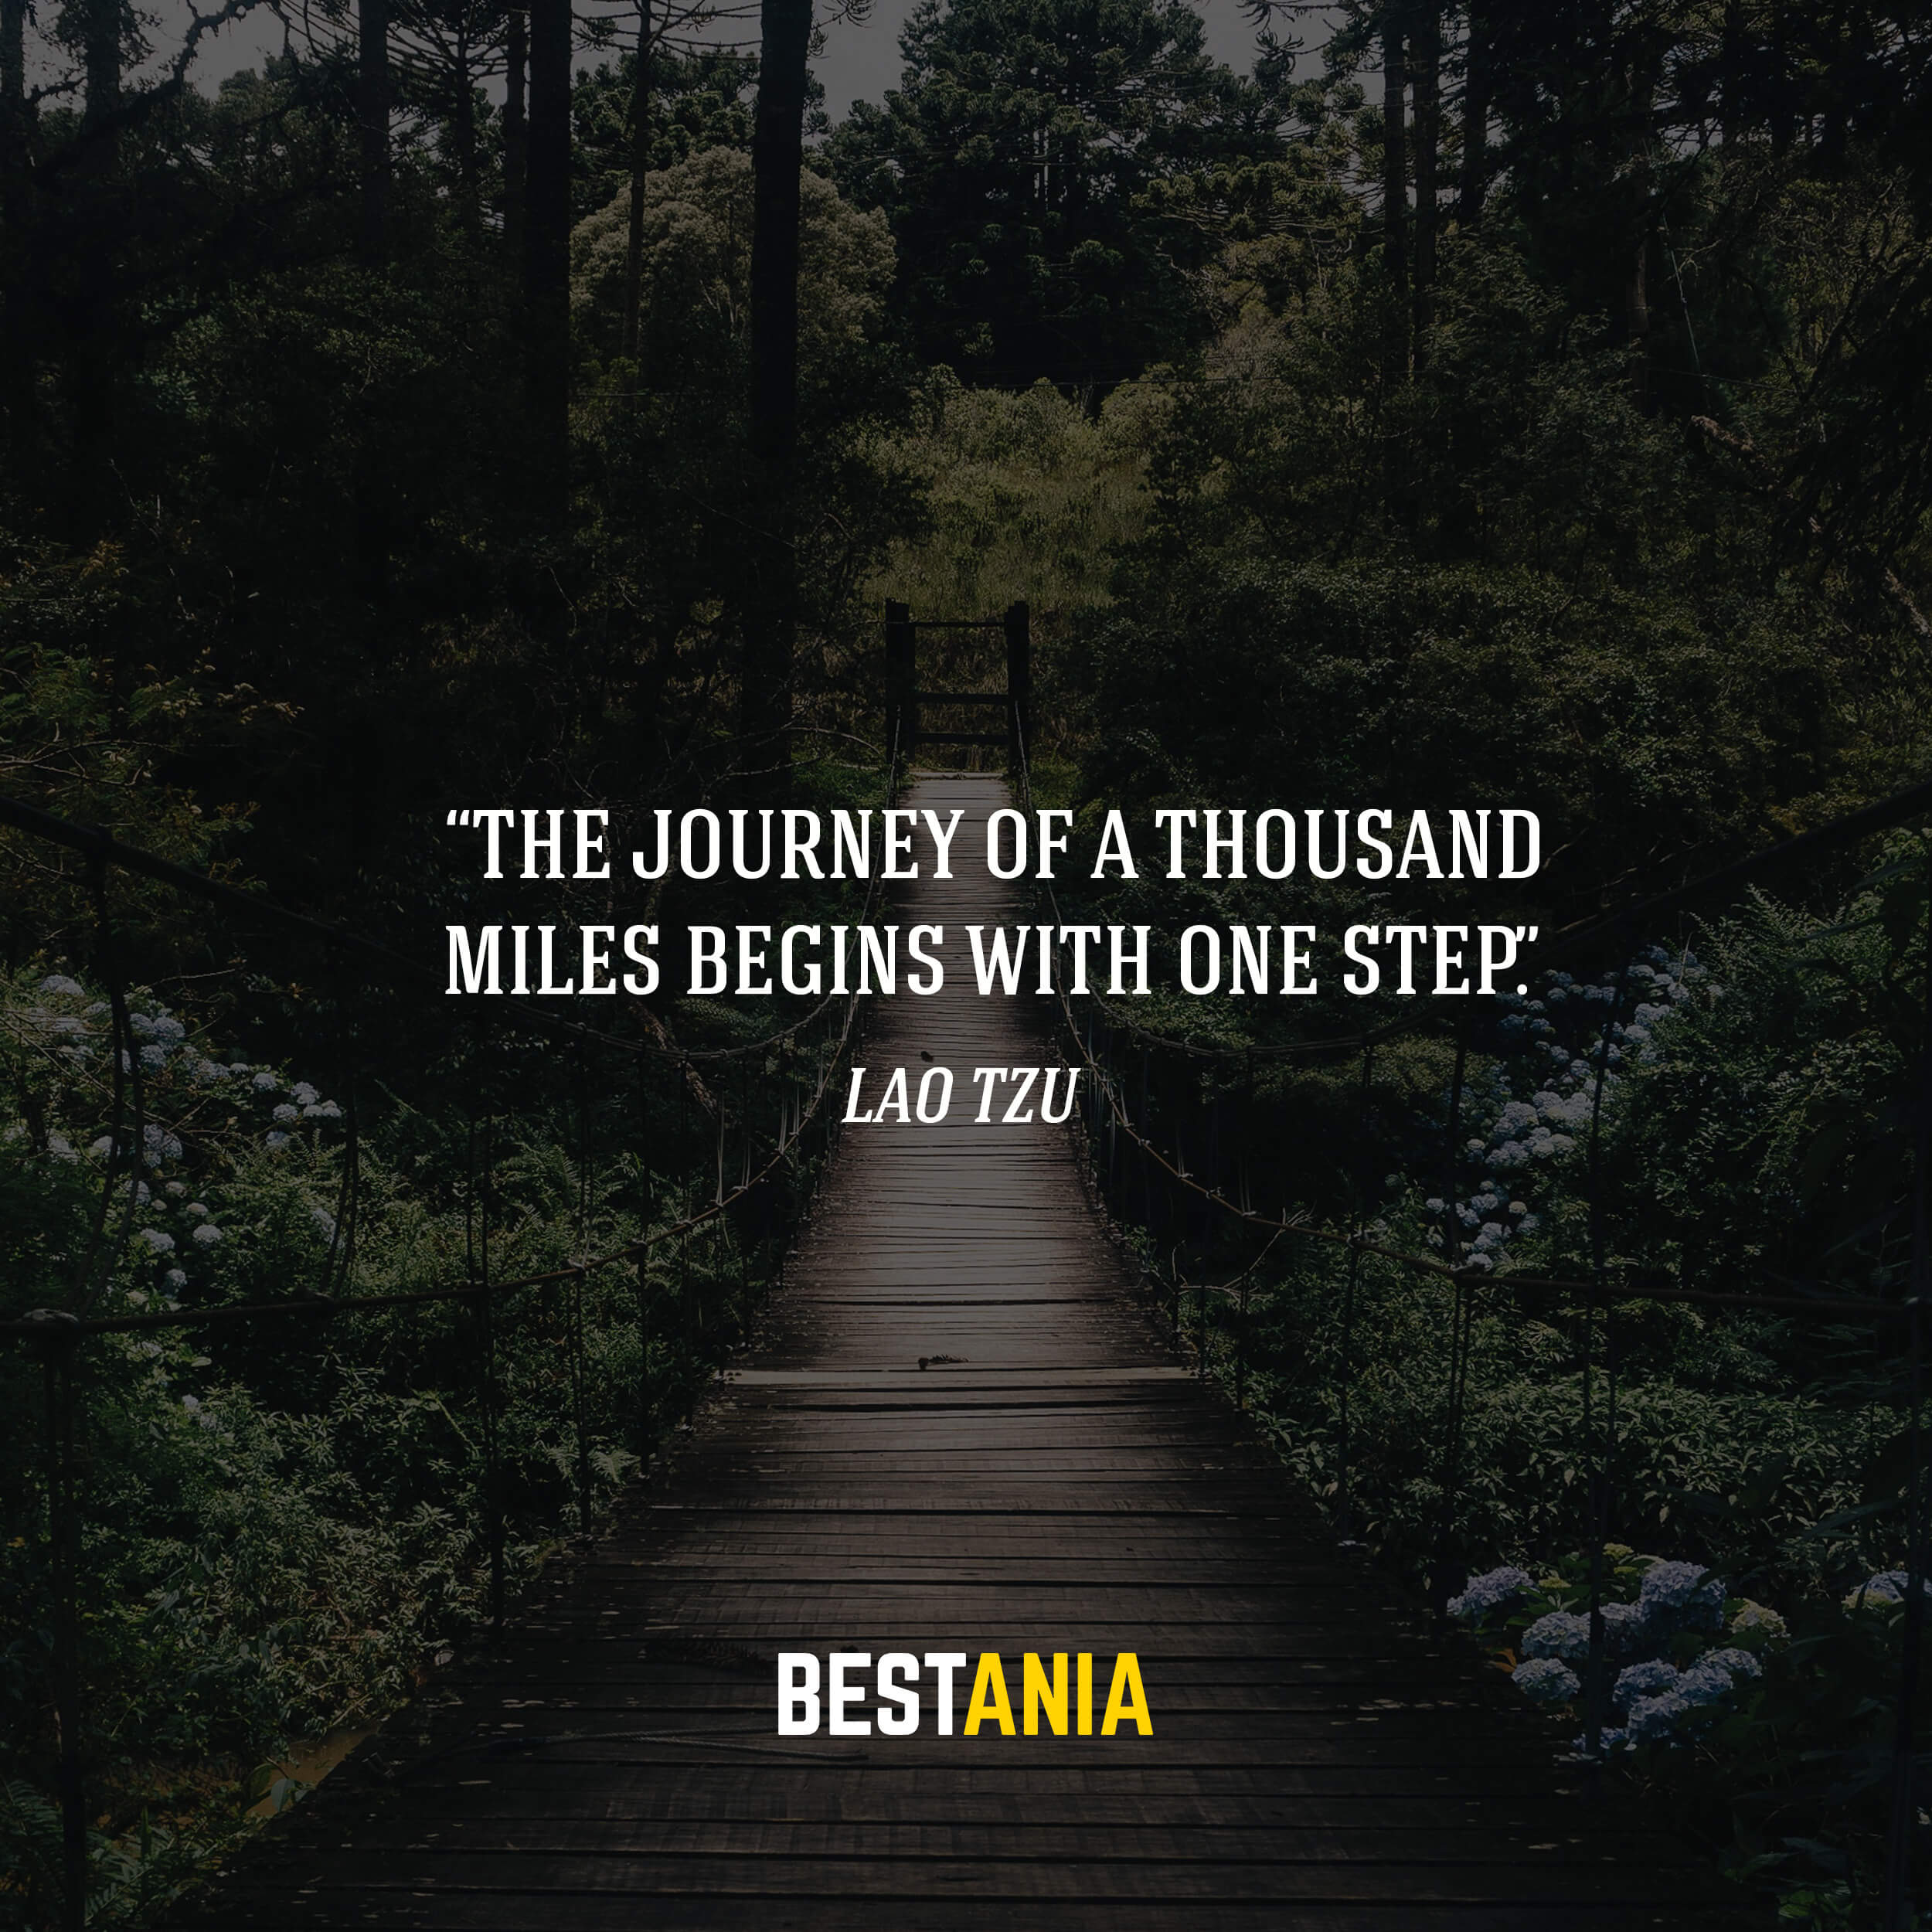 """The journey of a thousand miles begins with one step."" – Lao Tzu"